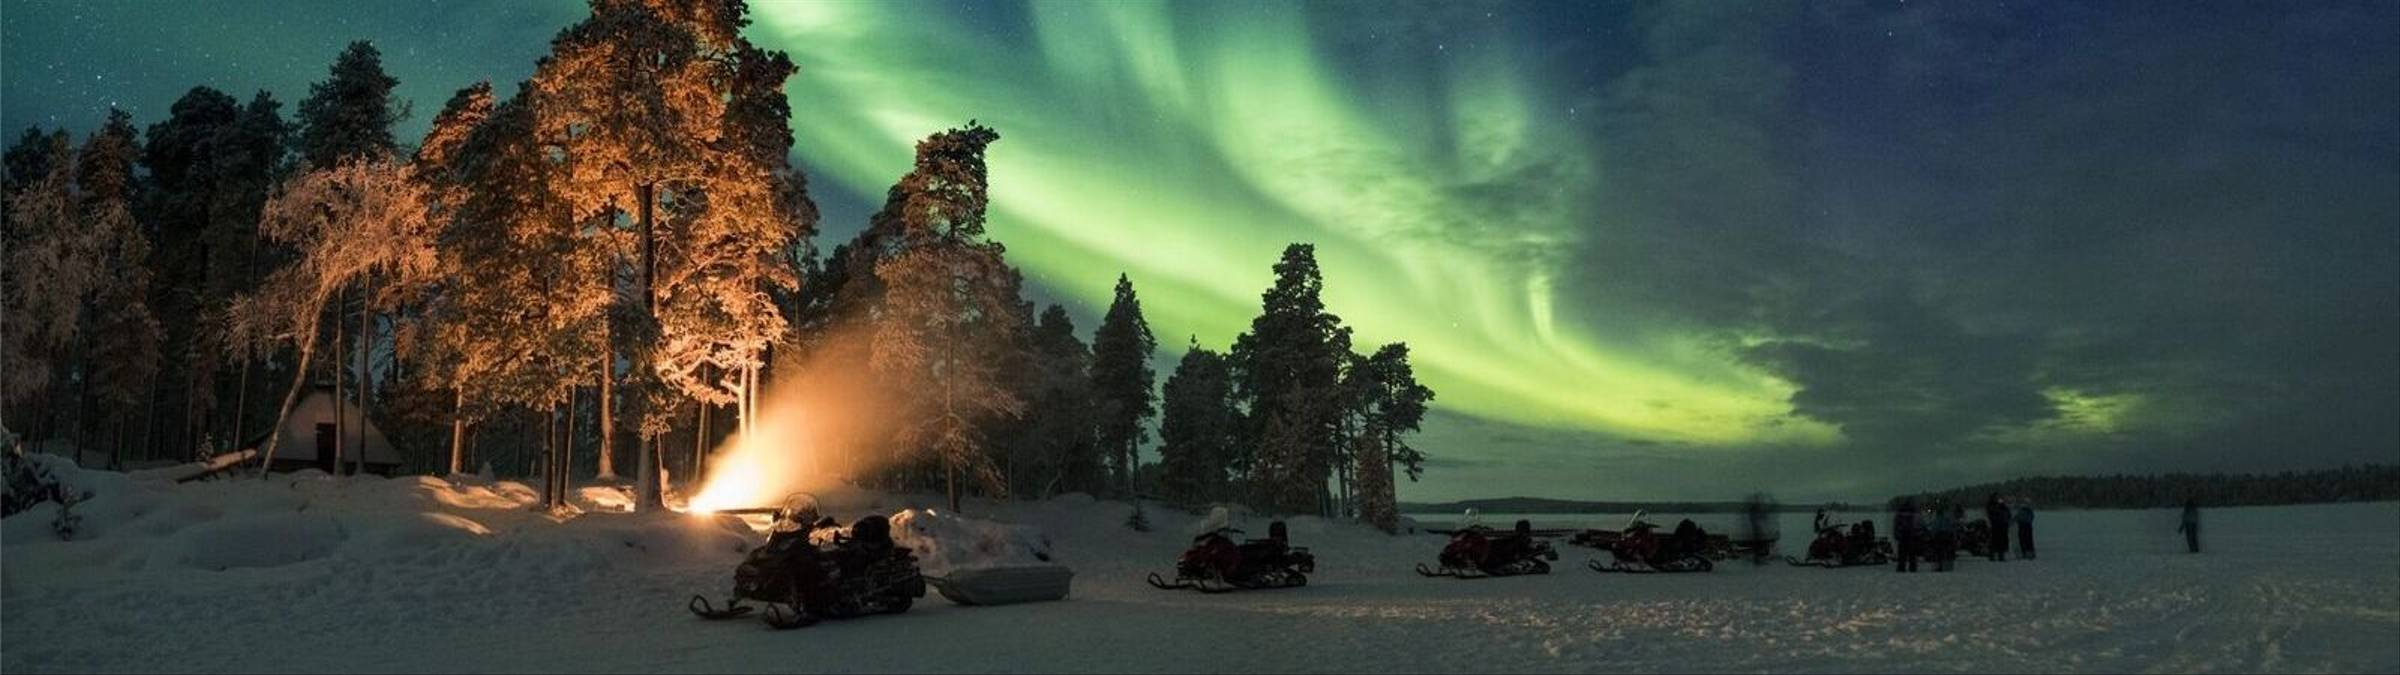 Northern Lights And Snowmobiles, Nellim